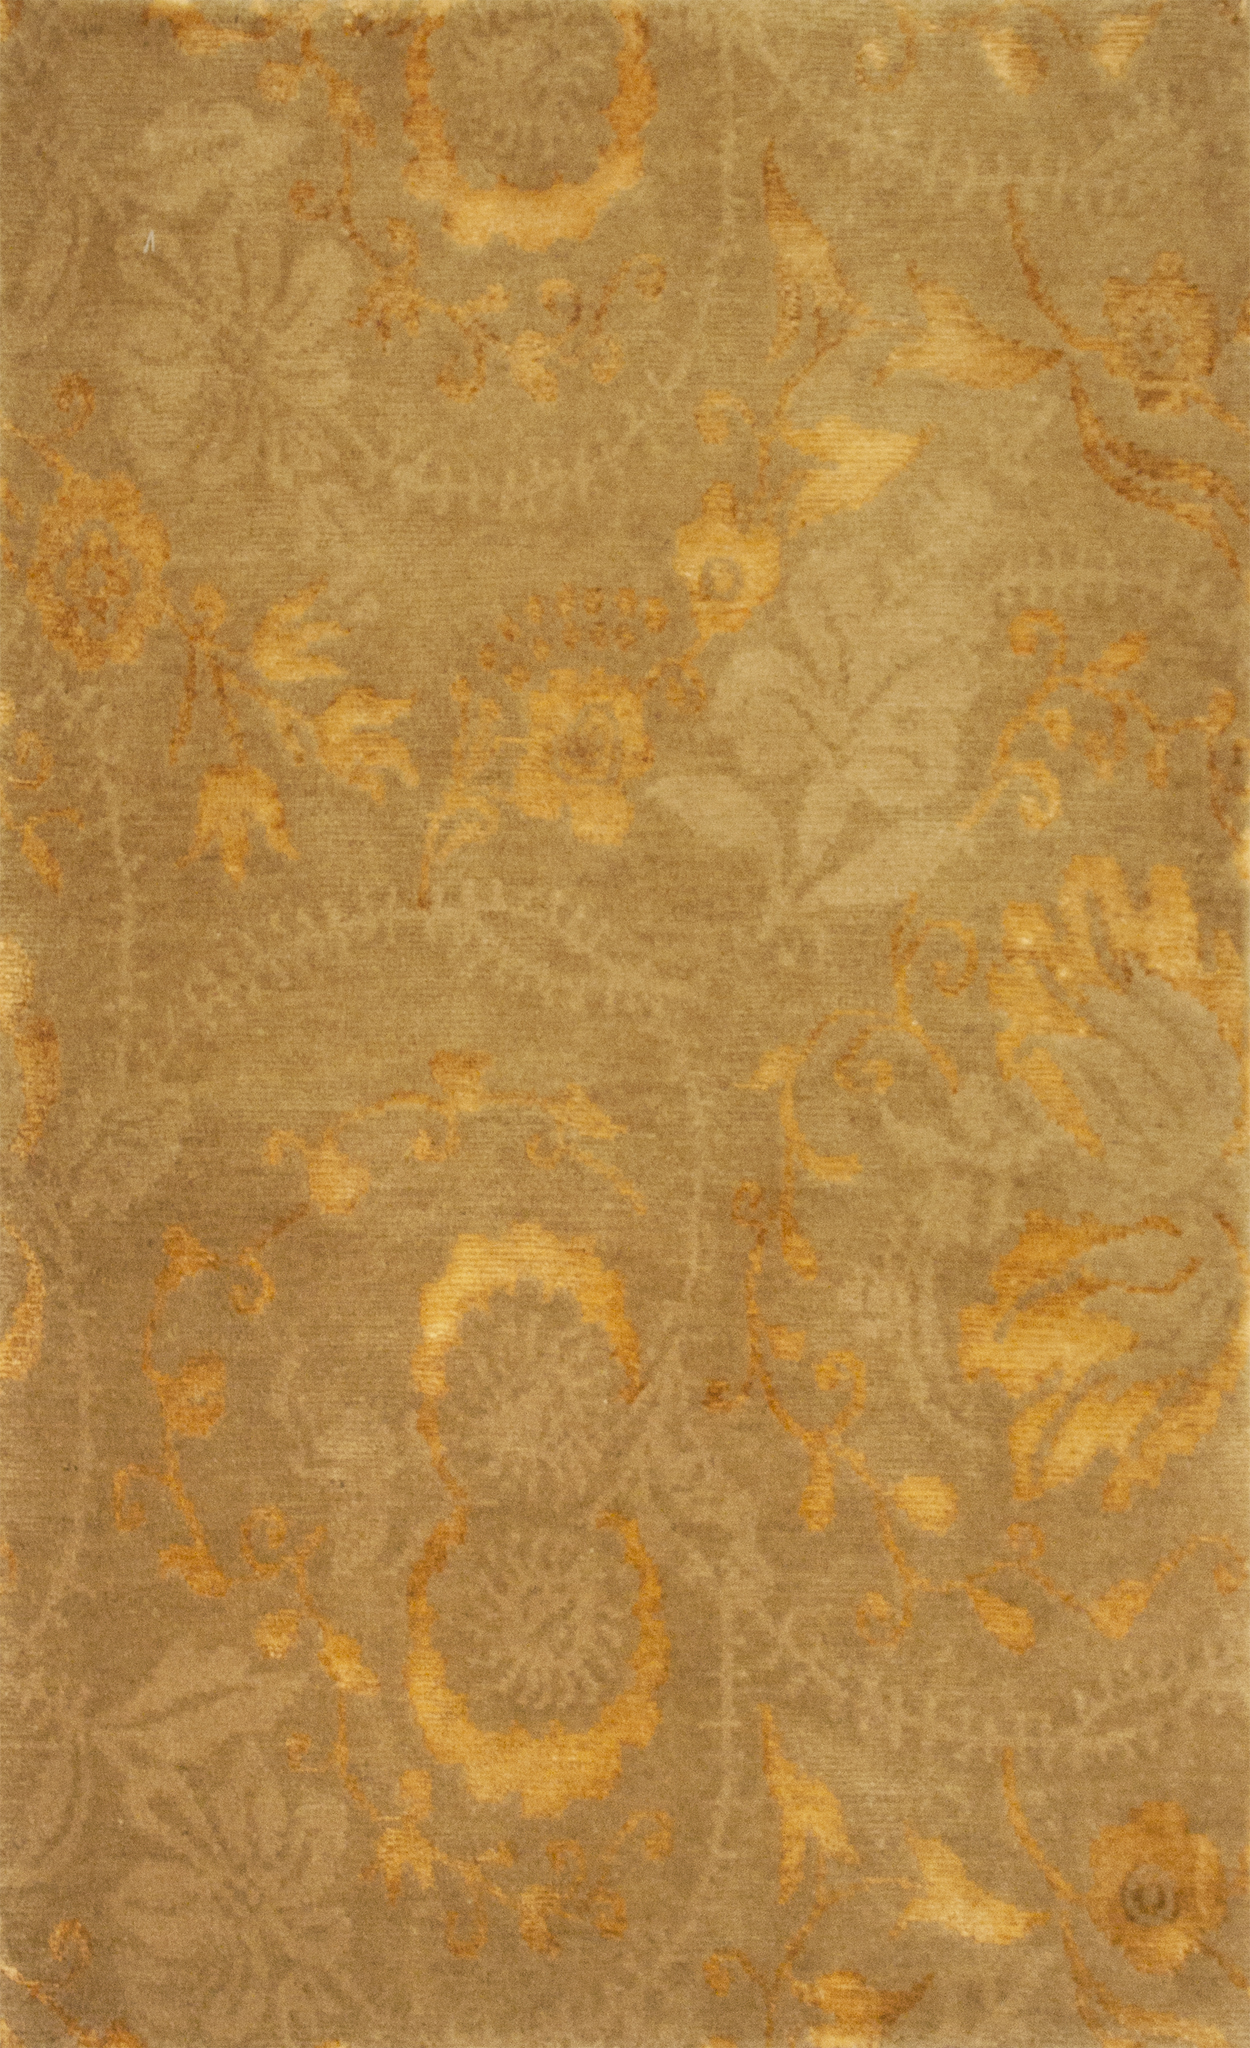 Golden Flowers Rug.jpg